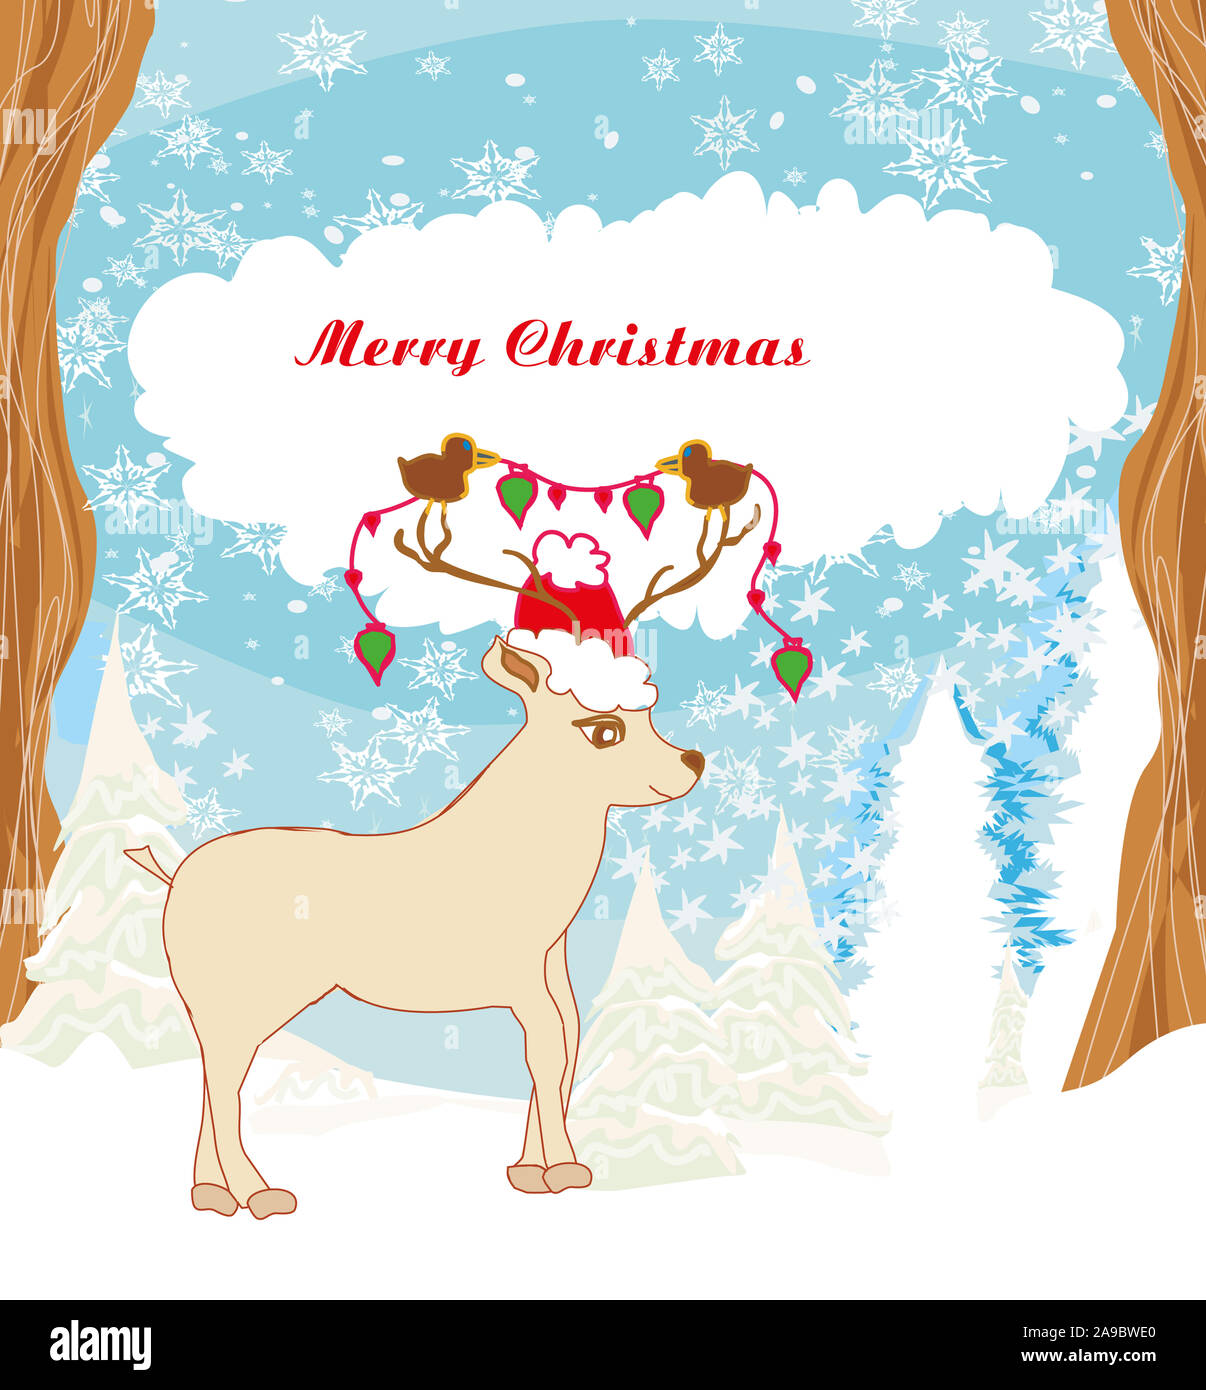 Abstract Christmas card with reindeer and birds Stock Photo